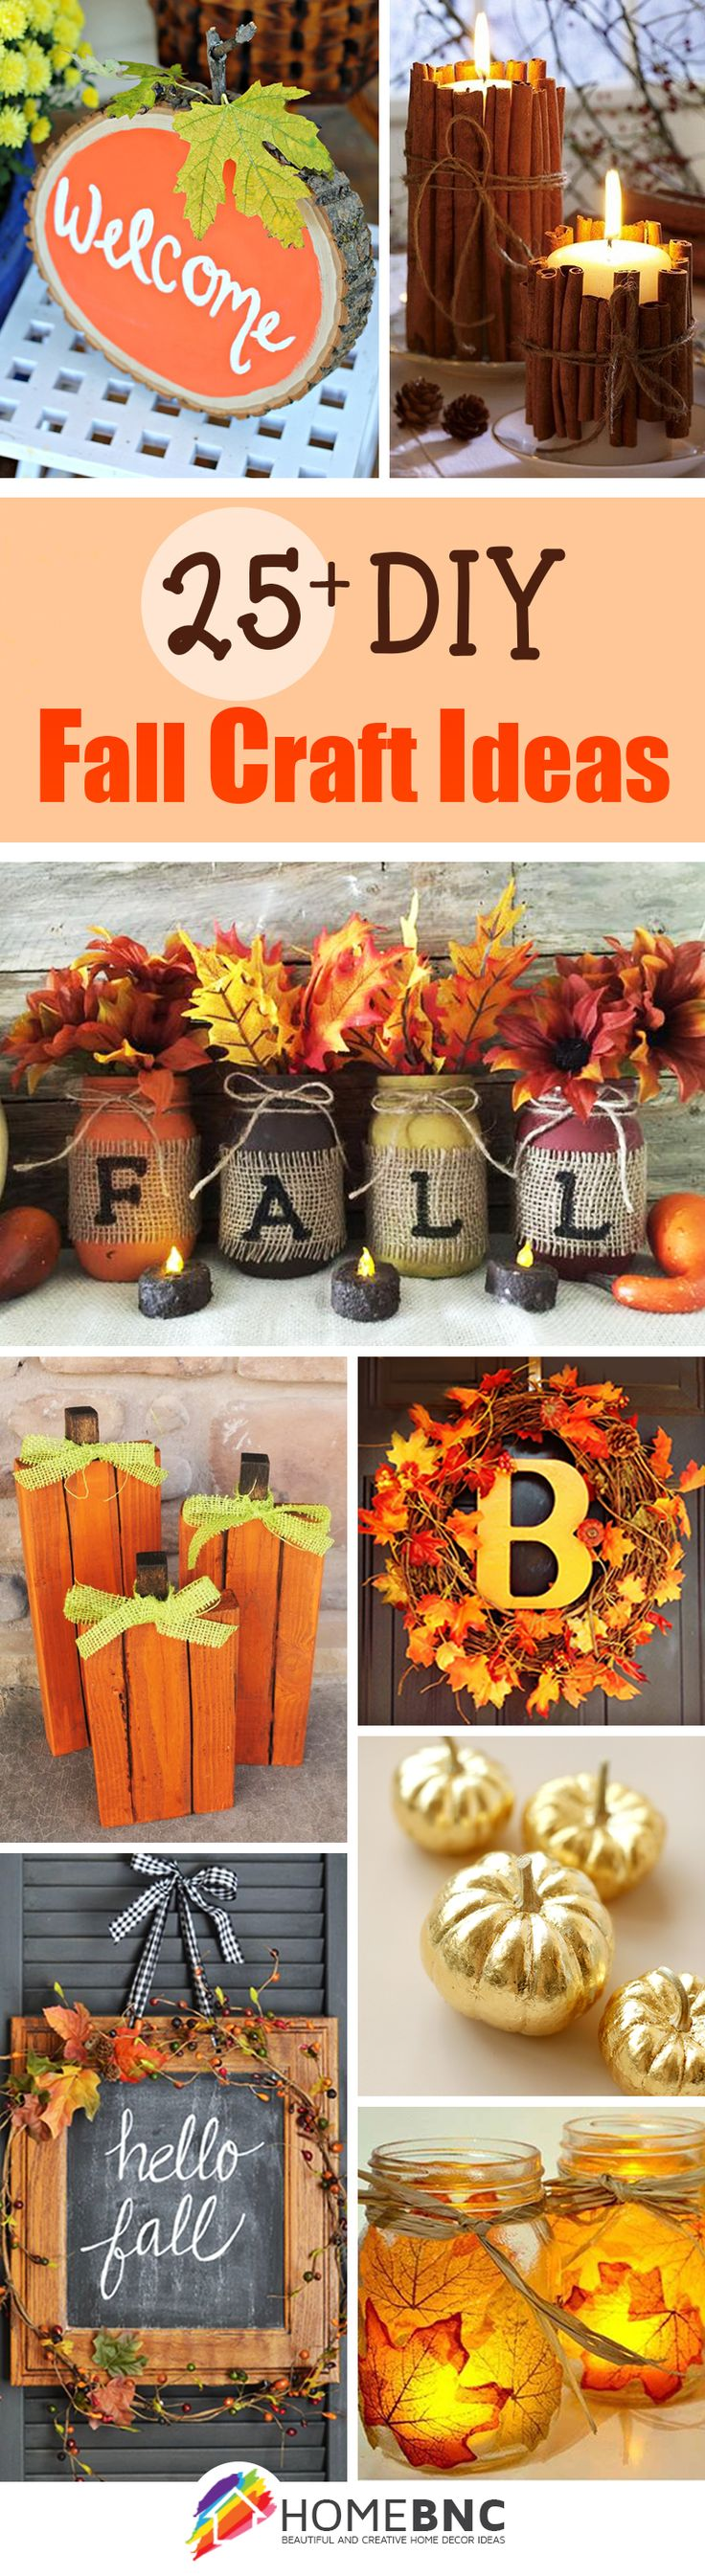 28 Best DIY Fall Craft Ideas and